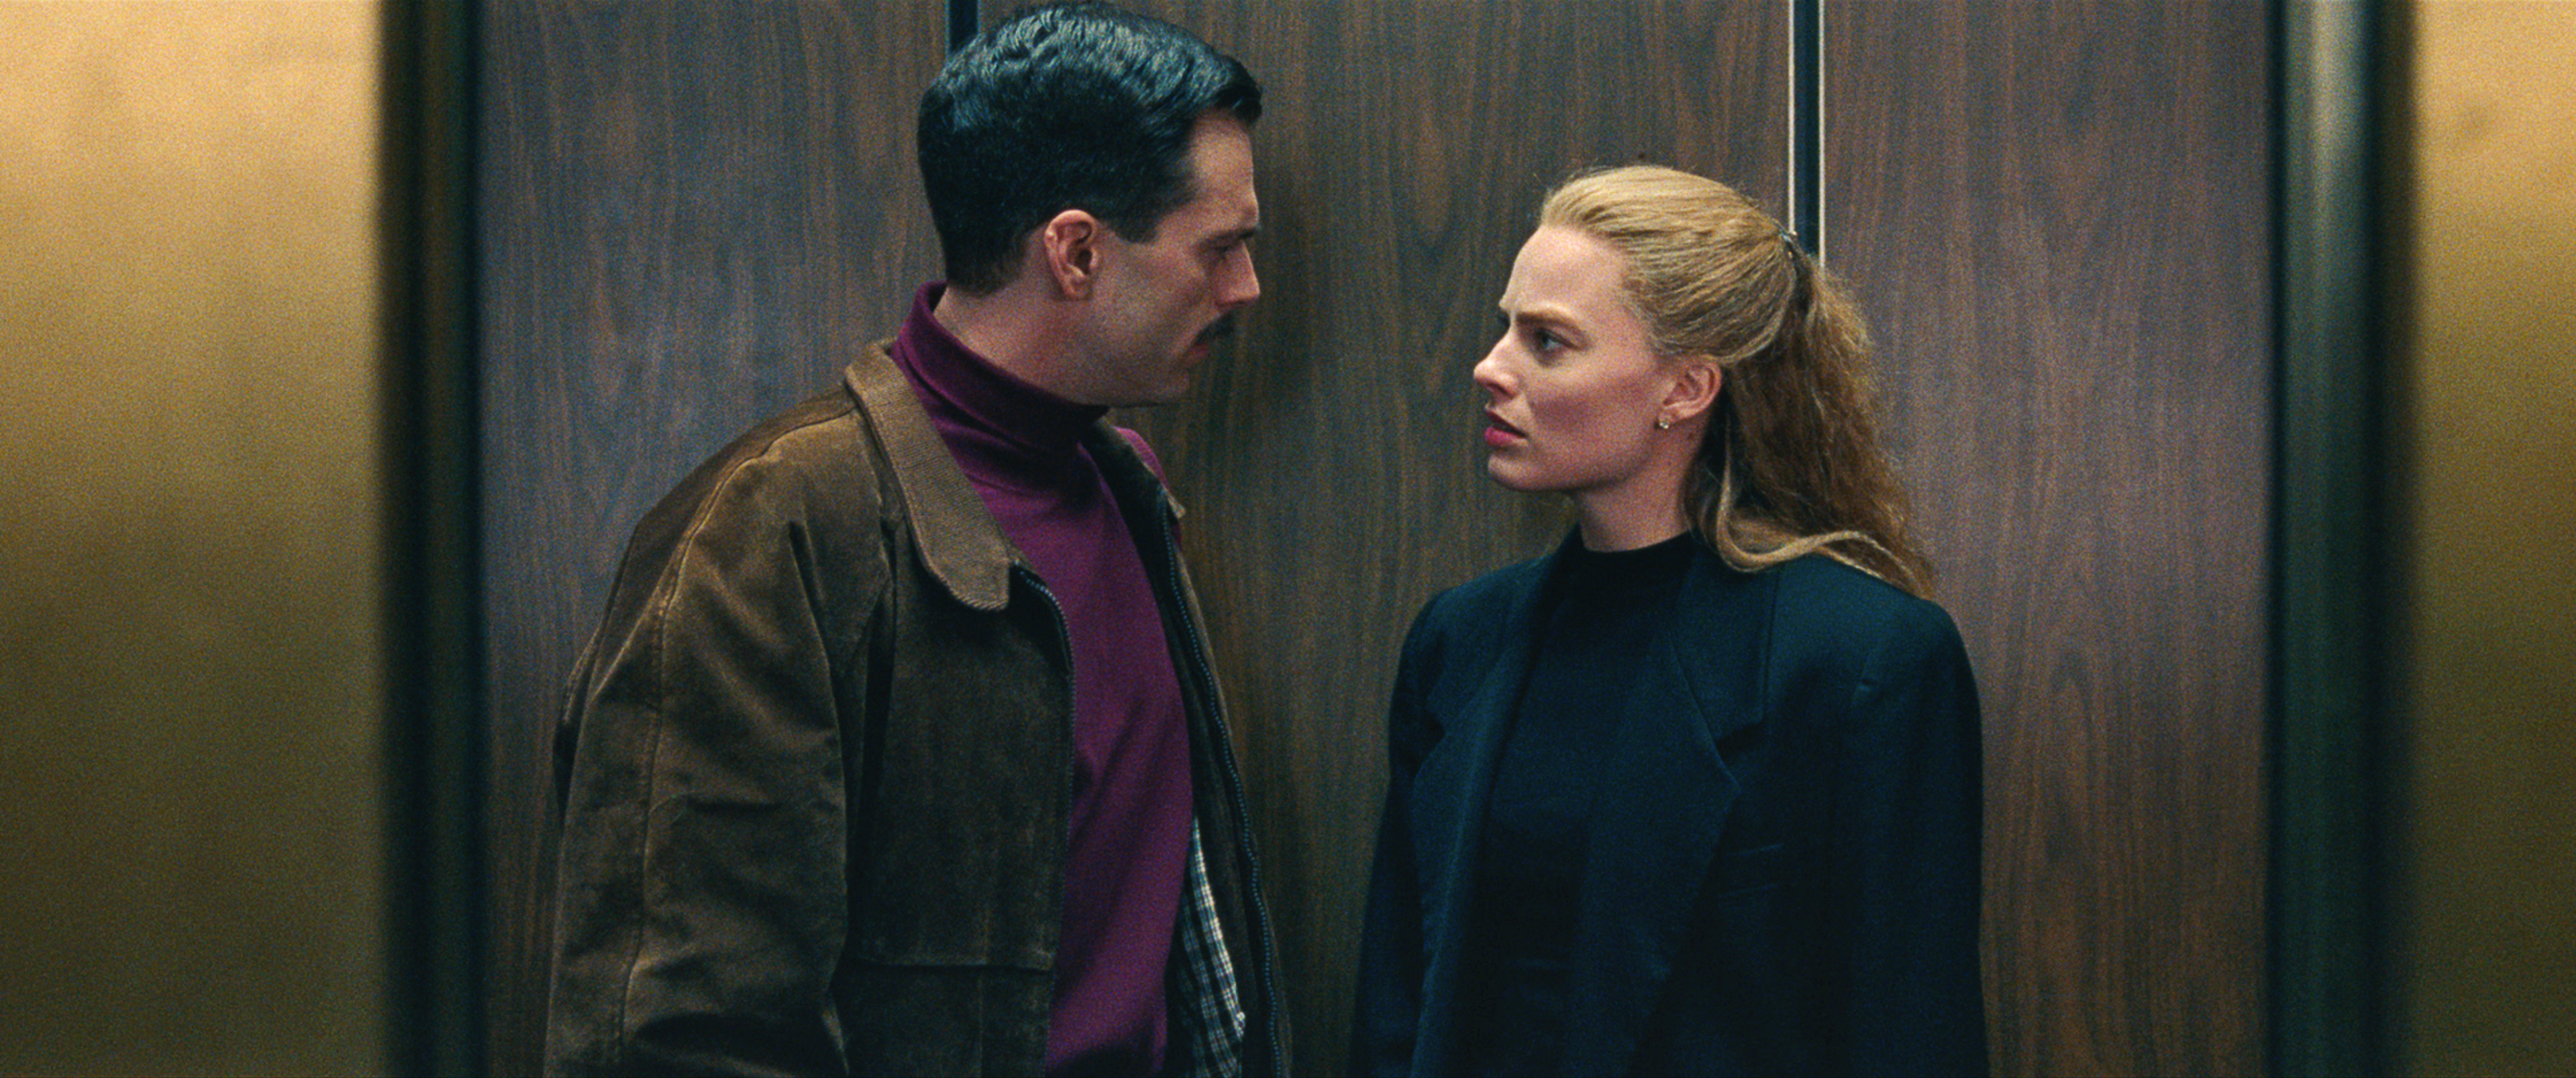 9- Tonya Harding (Margot Robbie) and Jeff Gillooly (Sebastian Stan) in an elevator in I, TONYA, courtesy of NEON and 30WEST